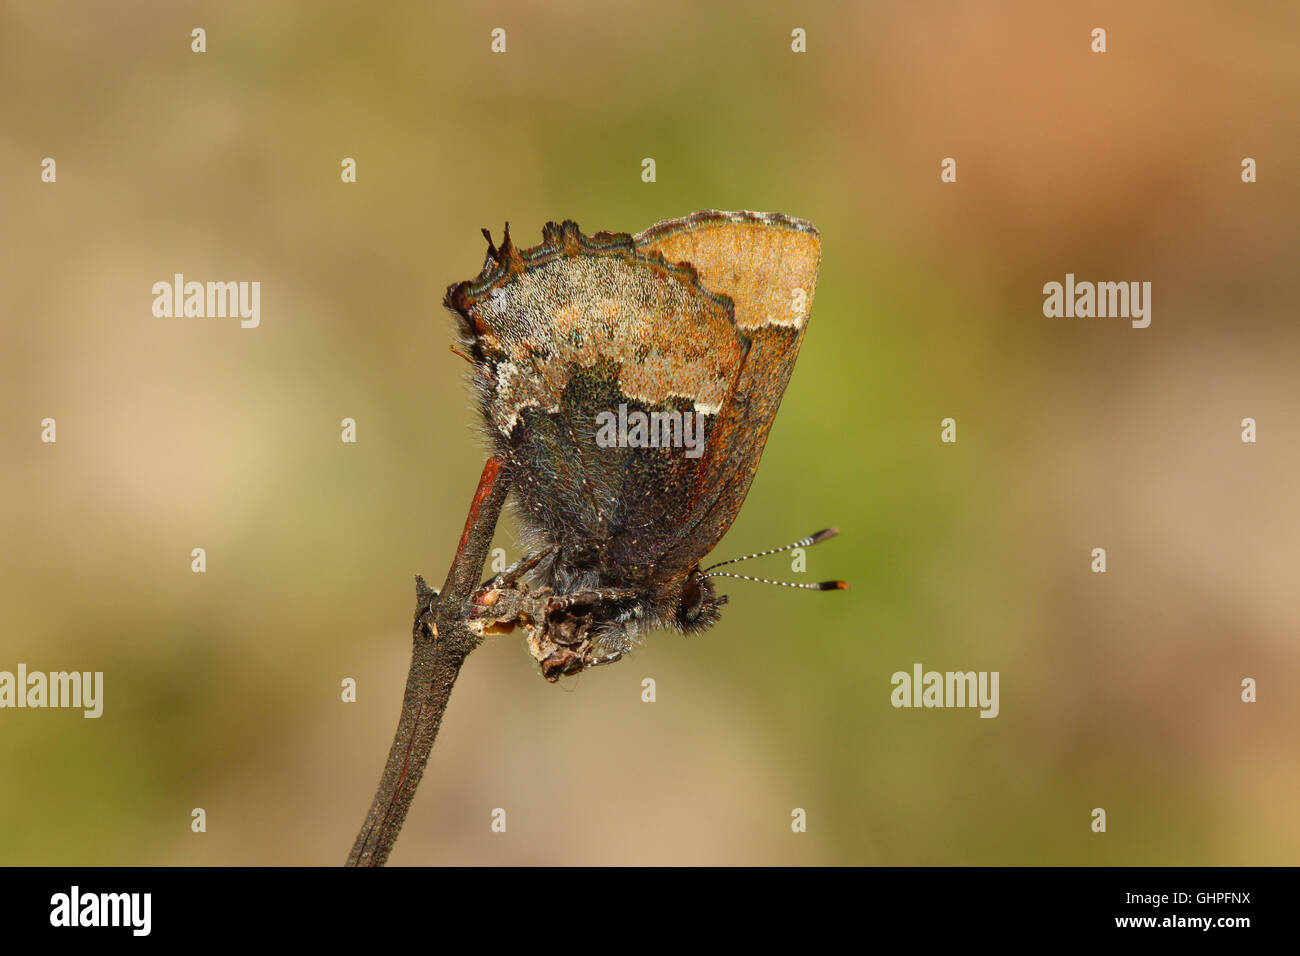 A Henry's Elfin butterfly (Callophrys henrici) perched on a stick, Indiana, United States Stock Photo